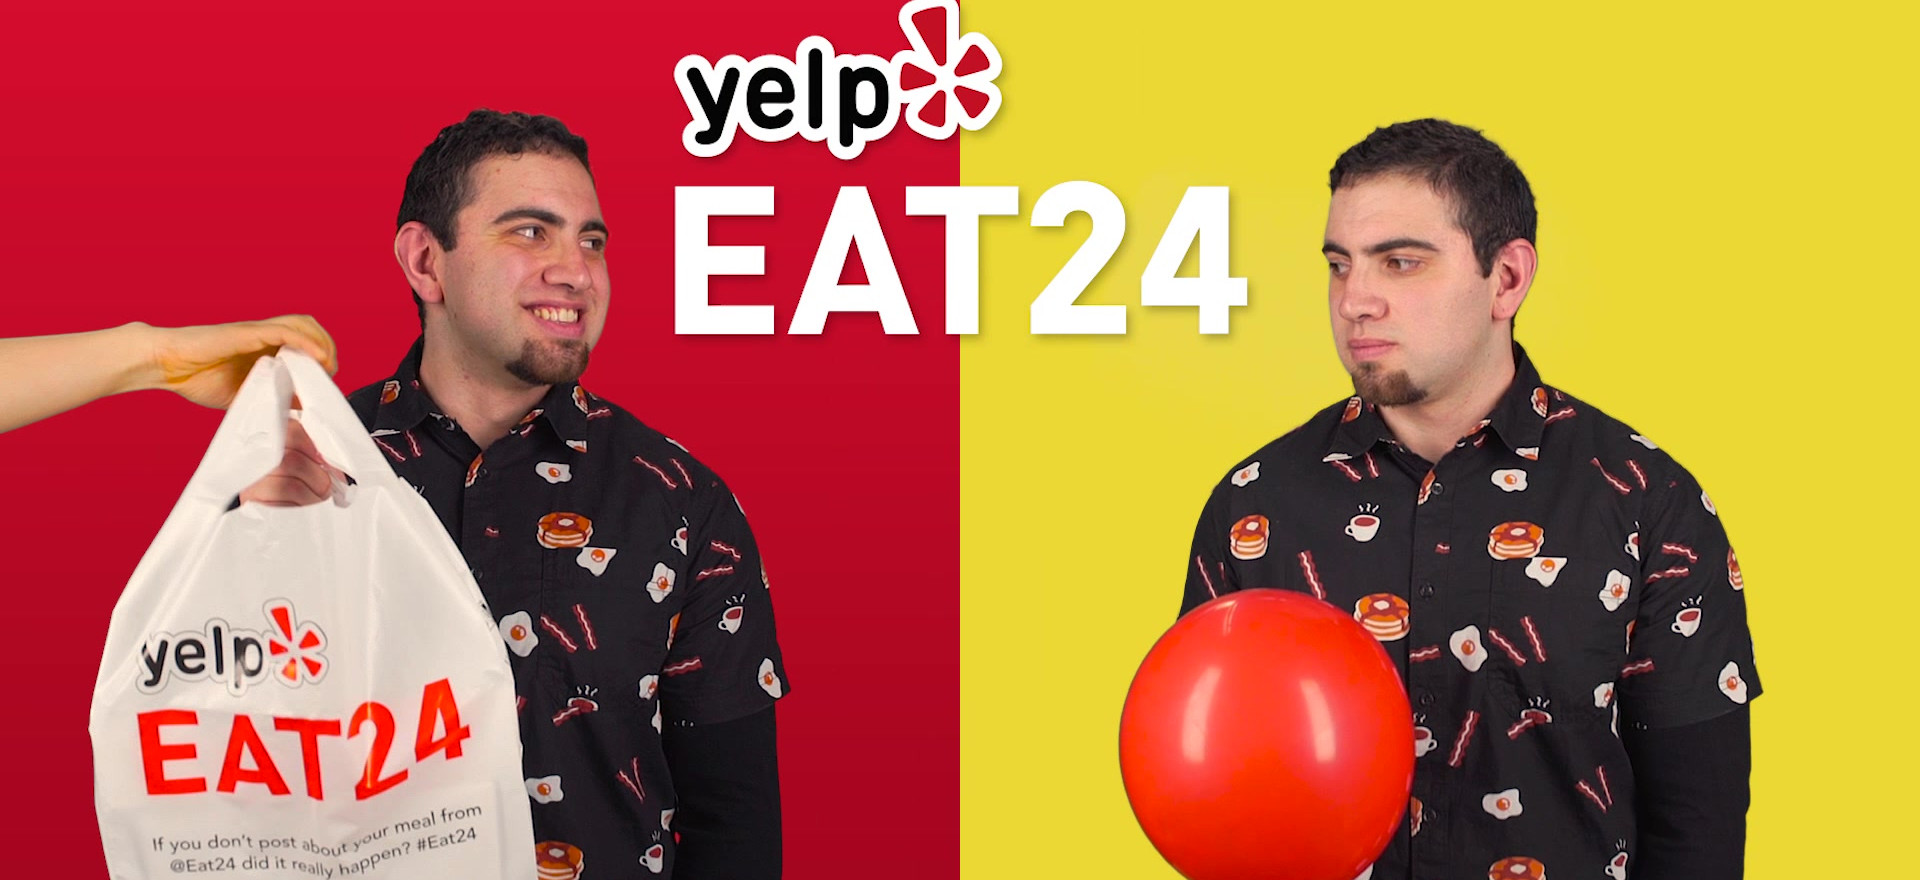 Yelp Eat24 Better Than Balloons